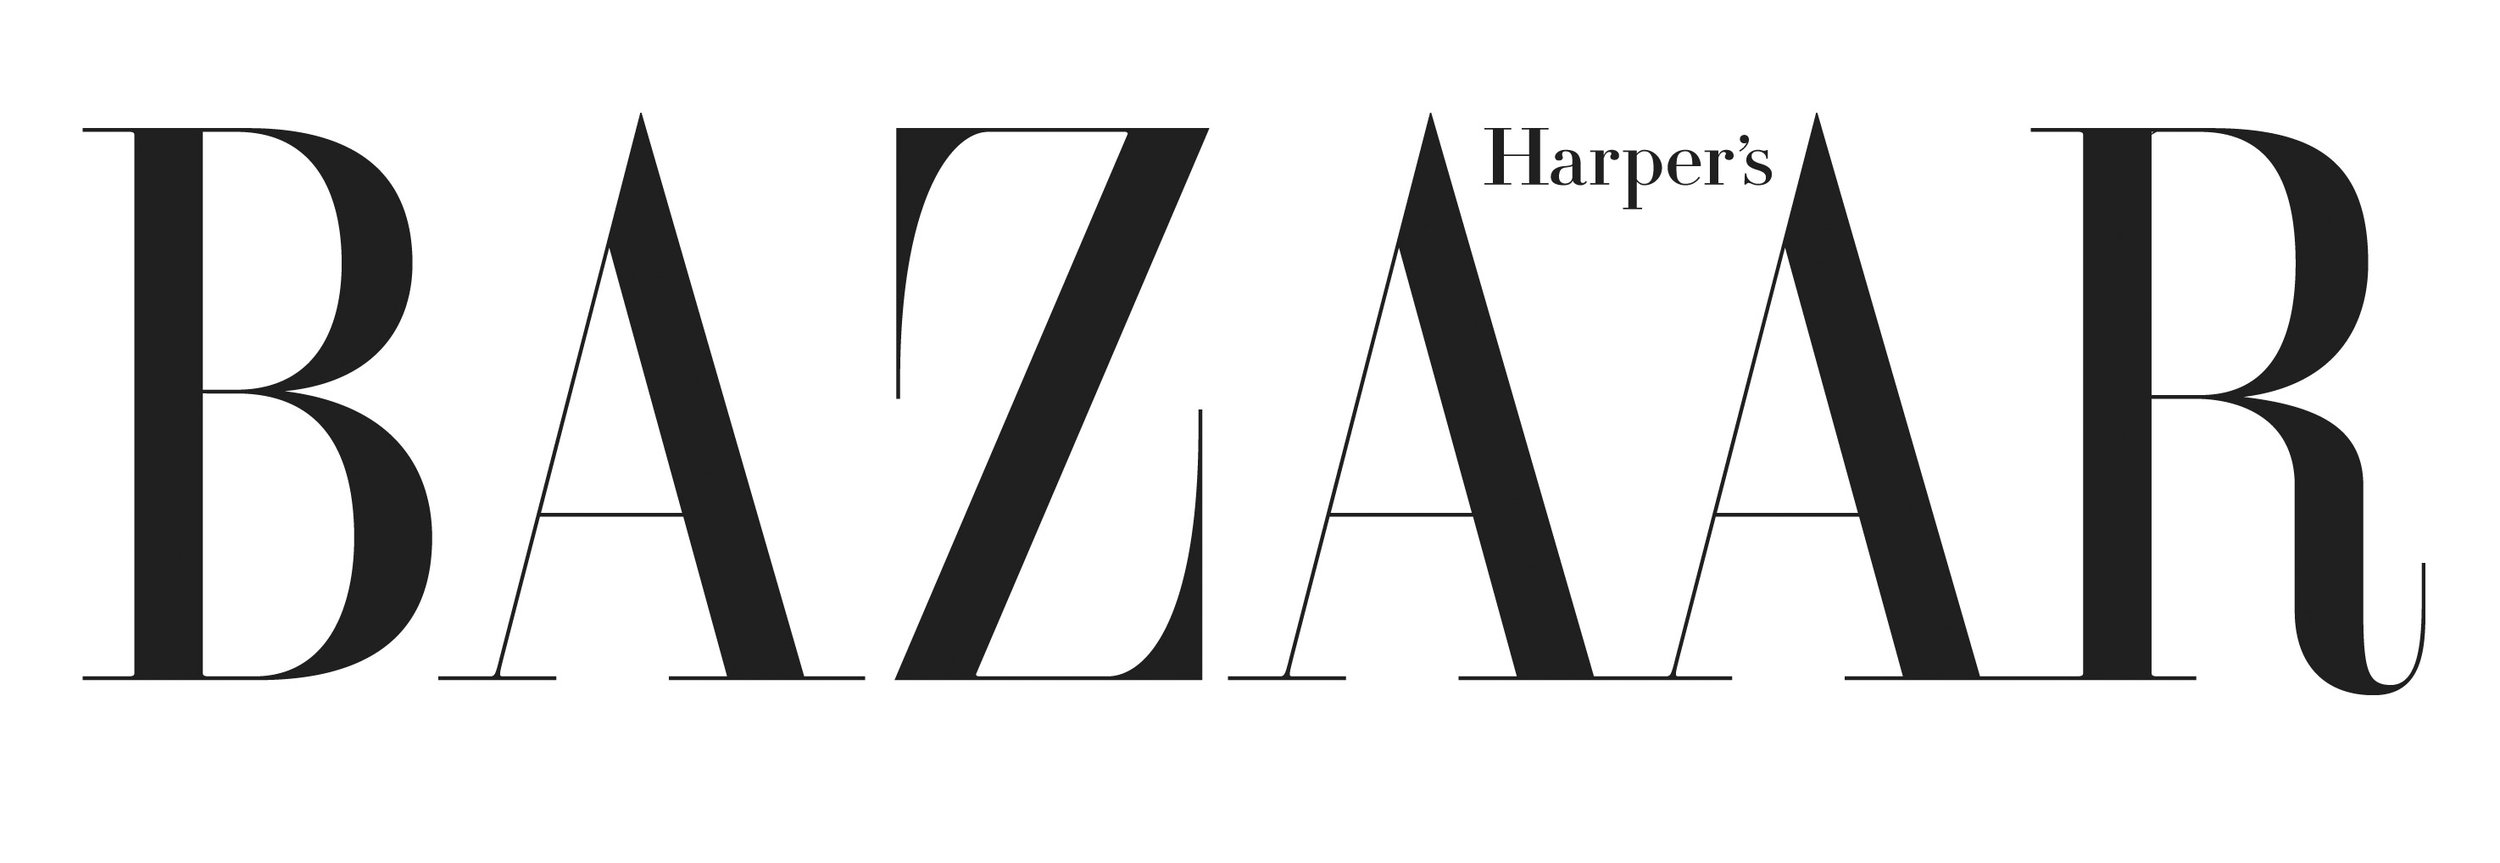 lane-and-lanae-Harper's-Bazaar.jpg